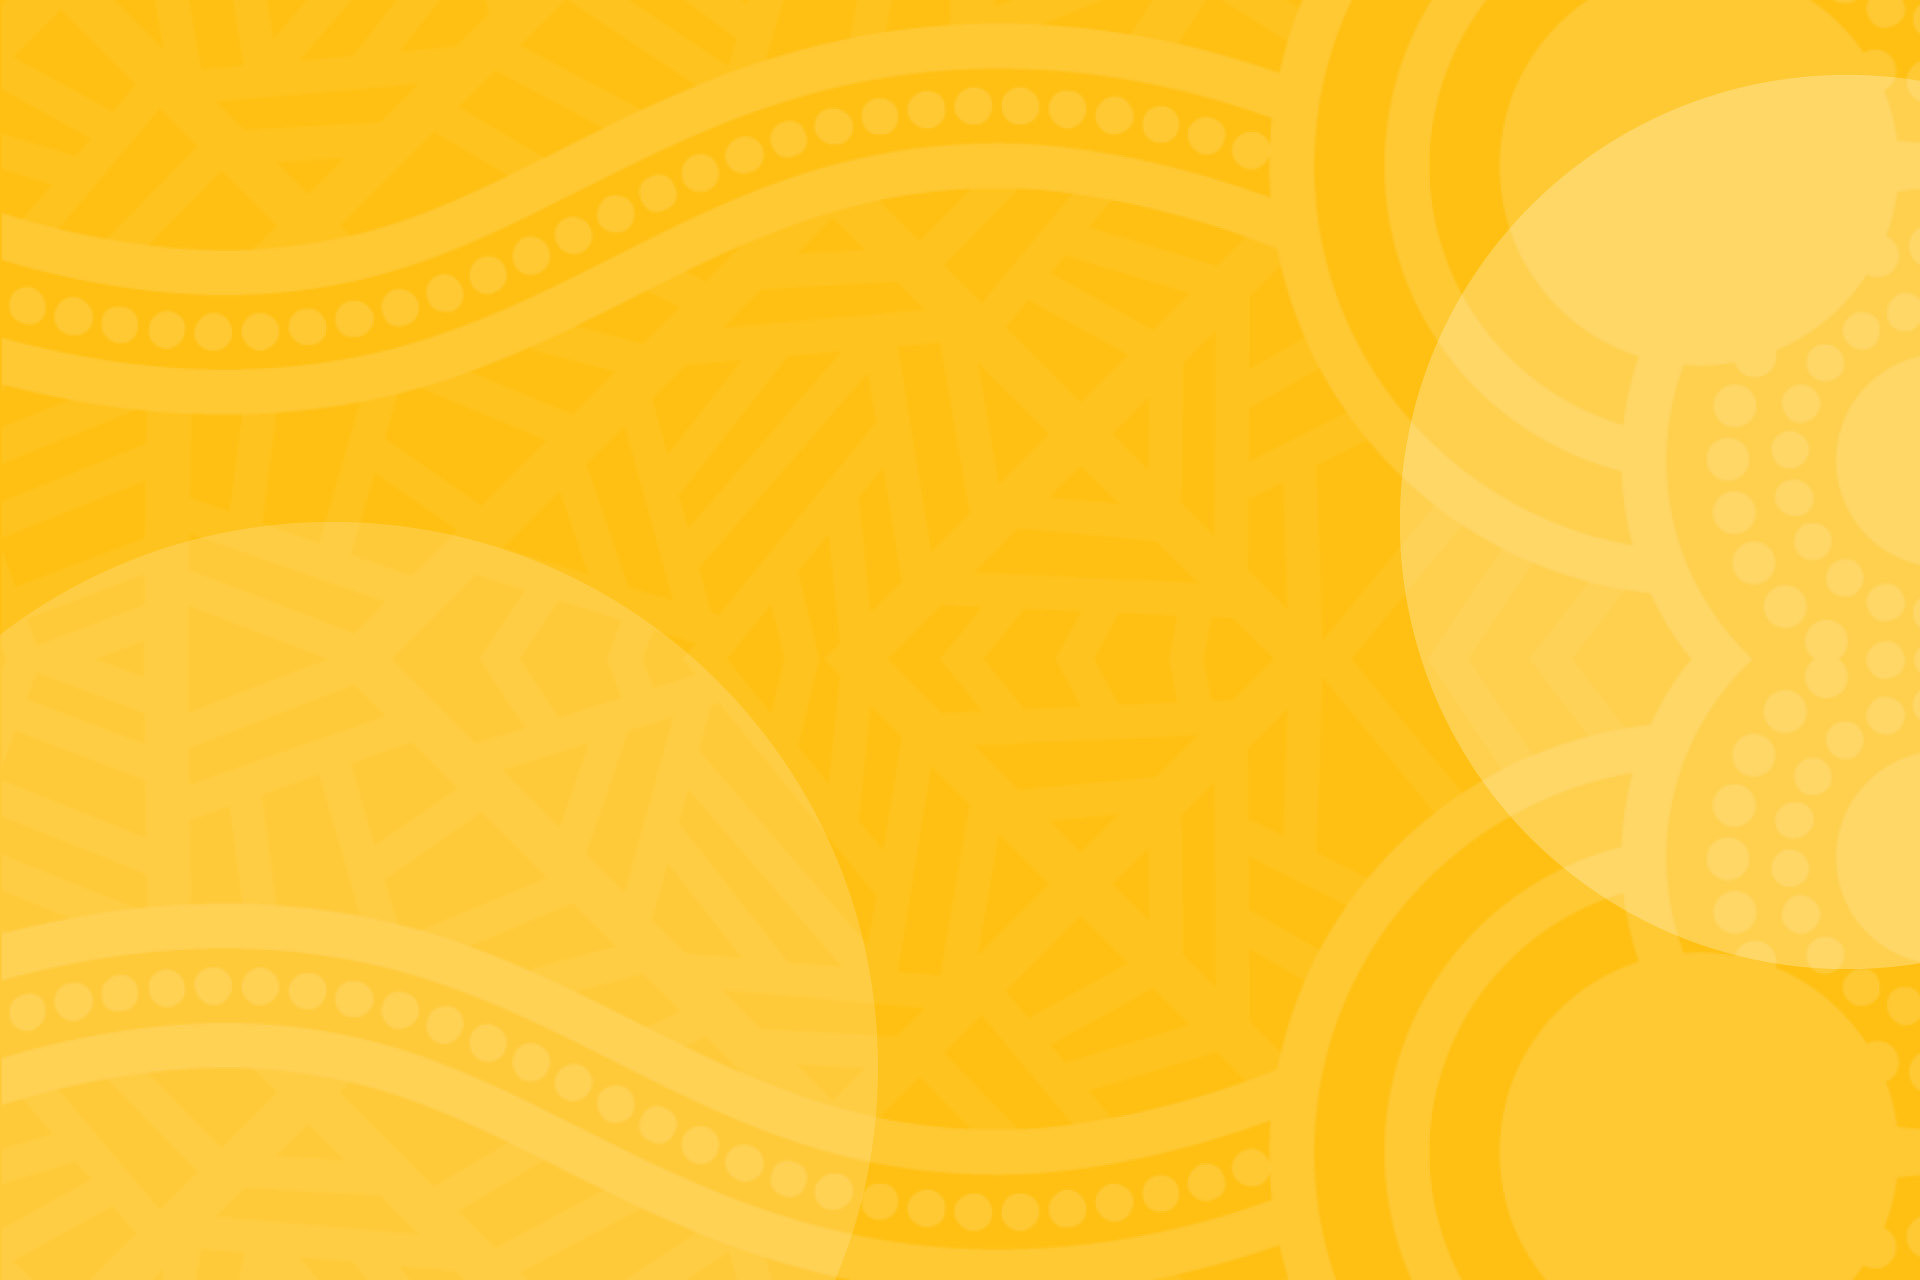 https://www.naidoc.org.au/sites/default/files/revslider/image/NAIDOC%20web%20background%20-%20yellow.jpg